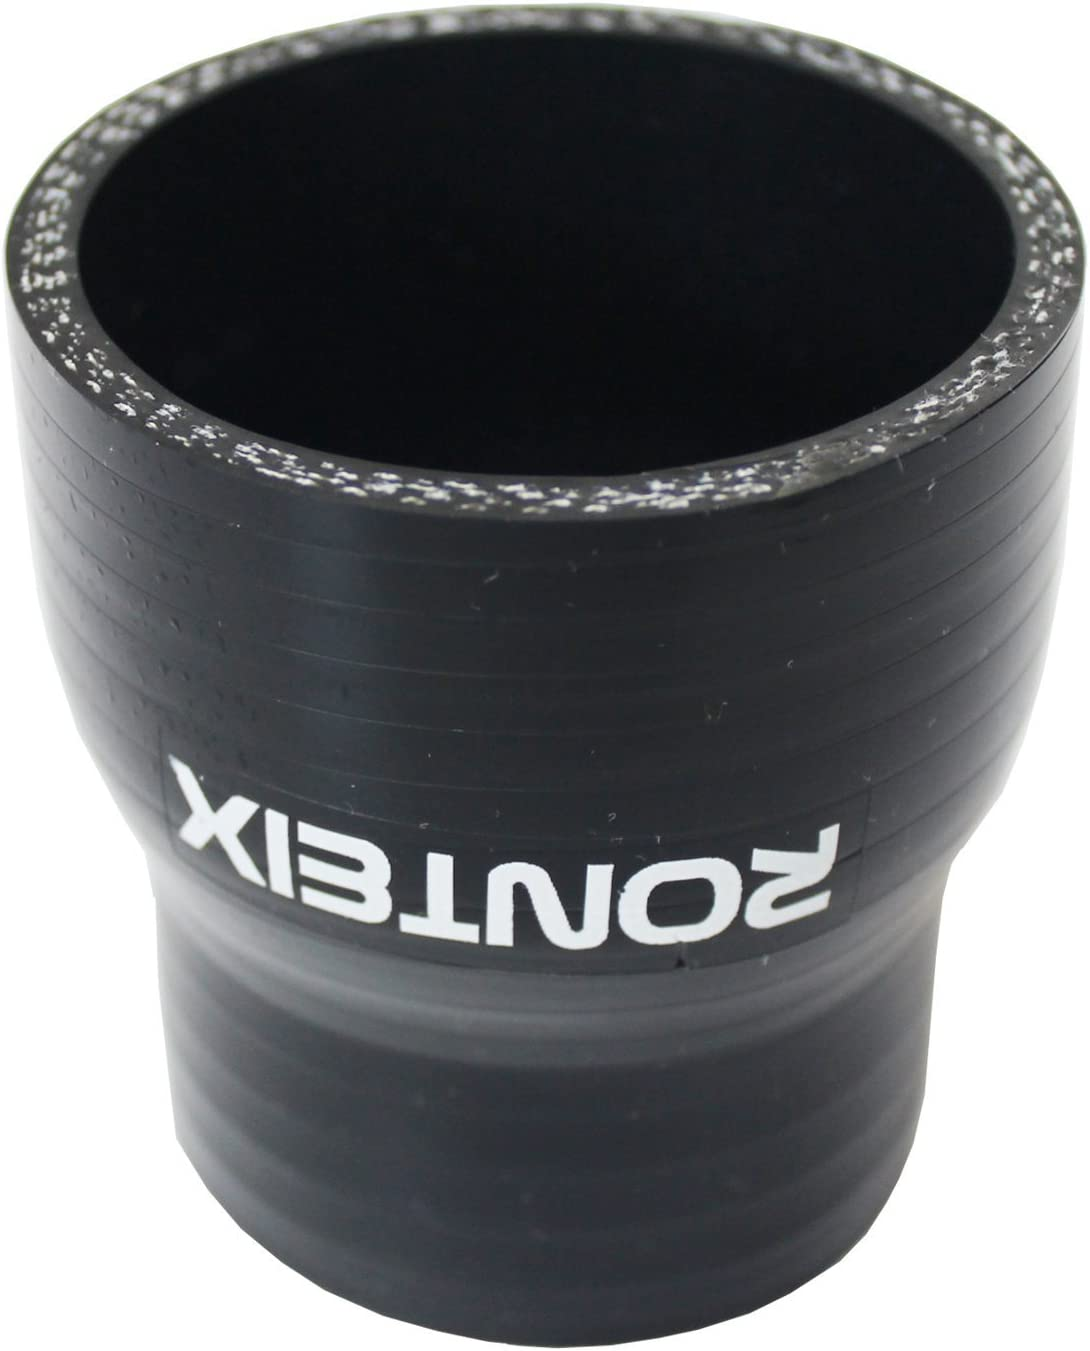 """2.25/"""" BLACK RACING 3 PLY REINFORCED SILICONE STRAIGHT COUPLER /& CLAMP KIT"""